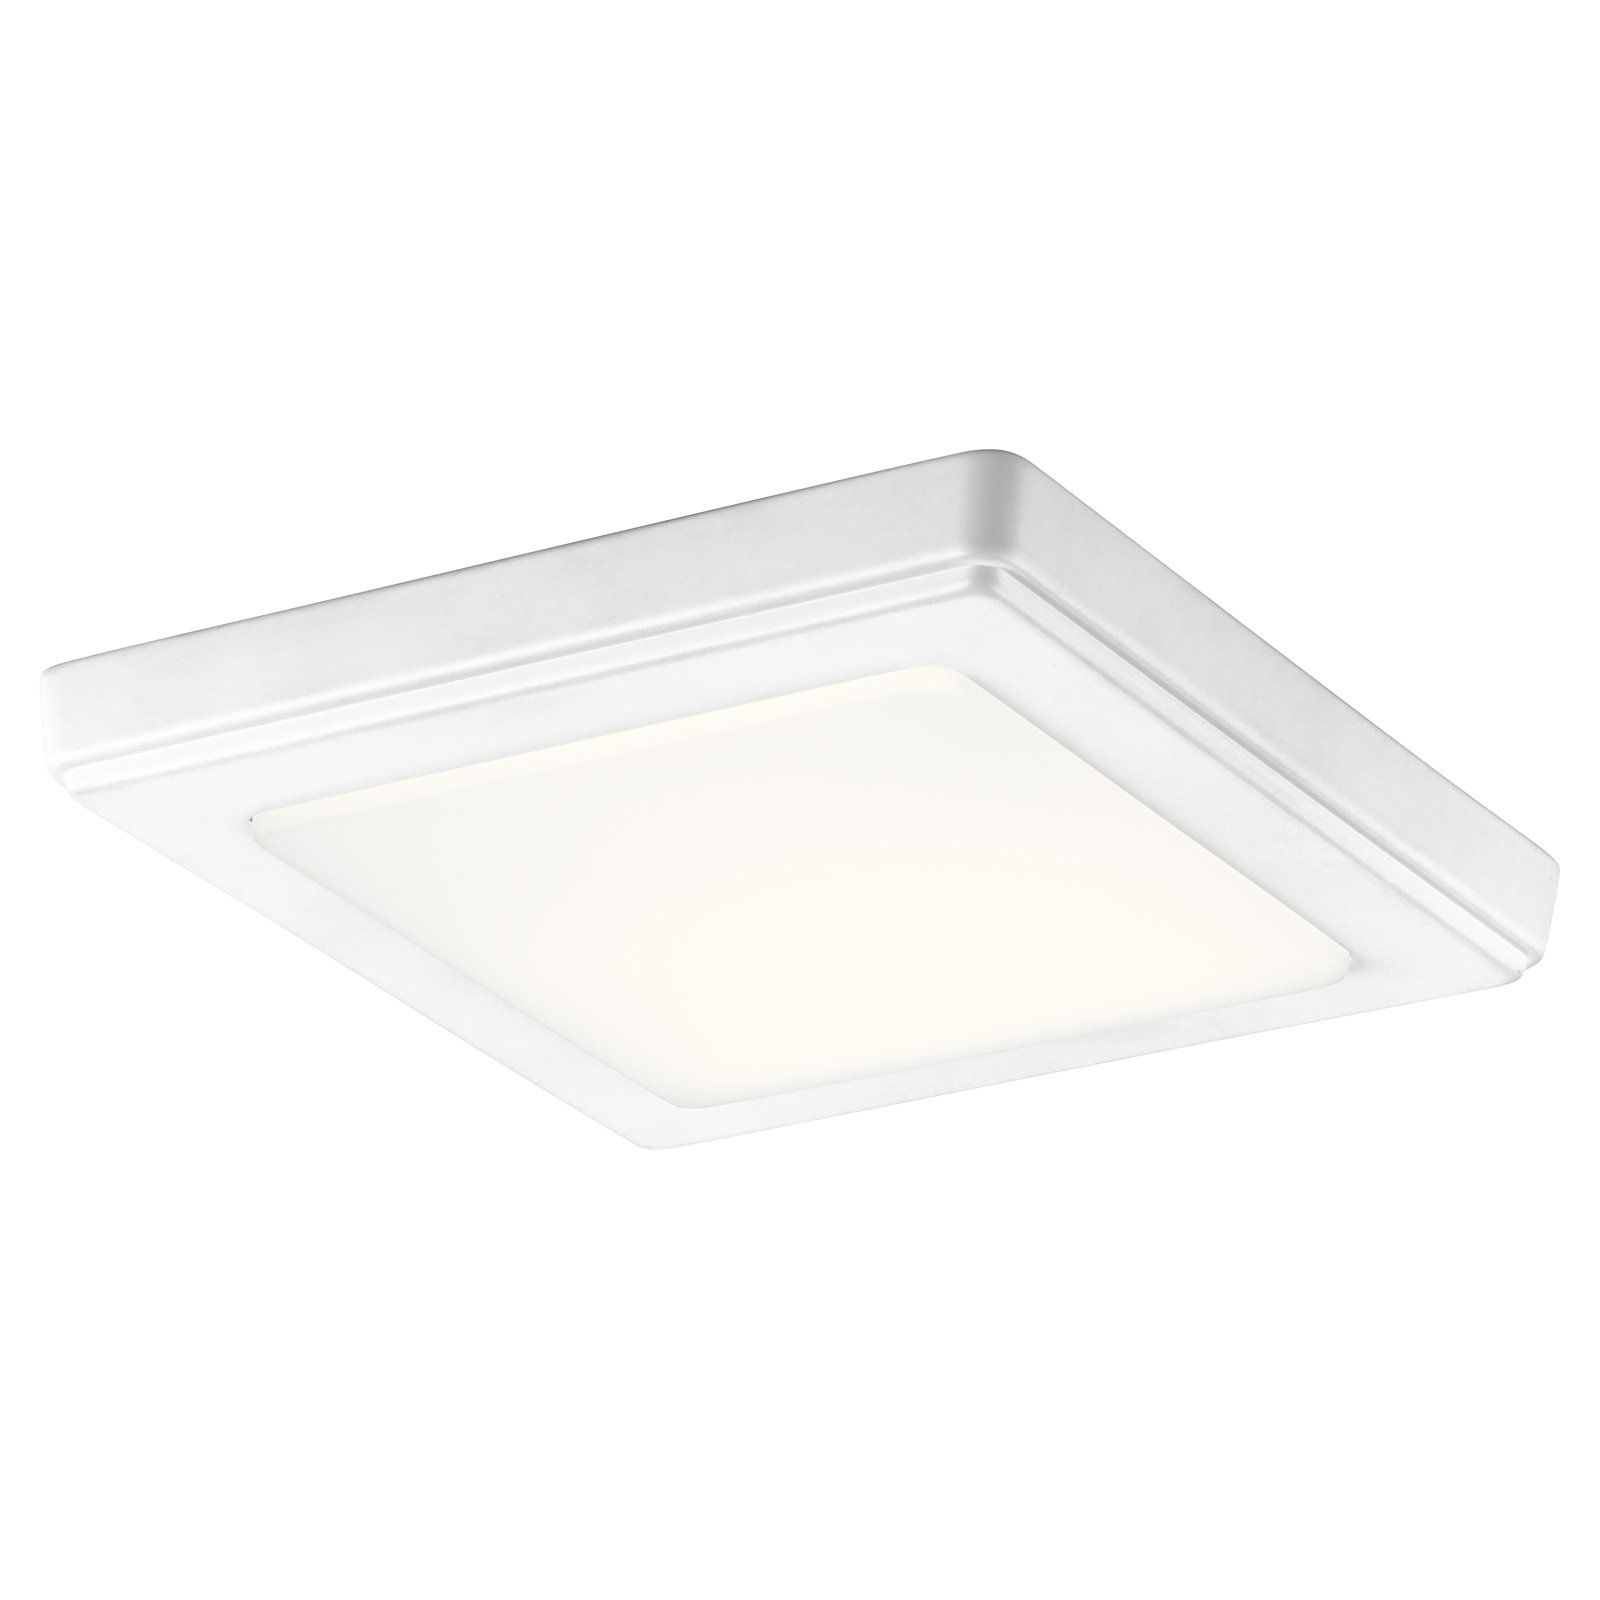 Kichler Zeo 4424 Square Flush Mount Light Led Flush Mount Led Ceiling Lights Flush Mount Lighting